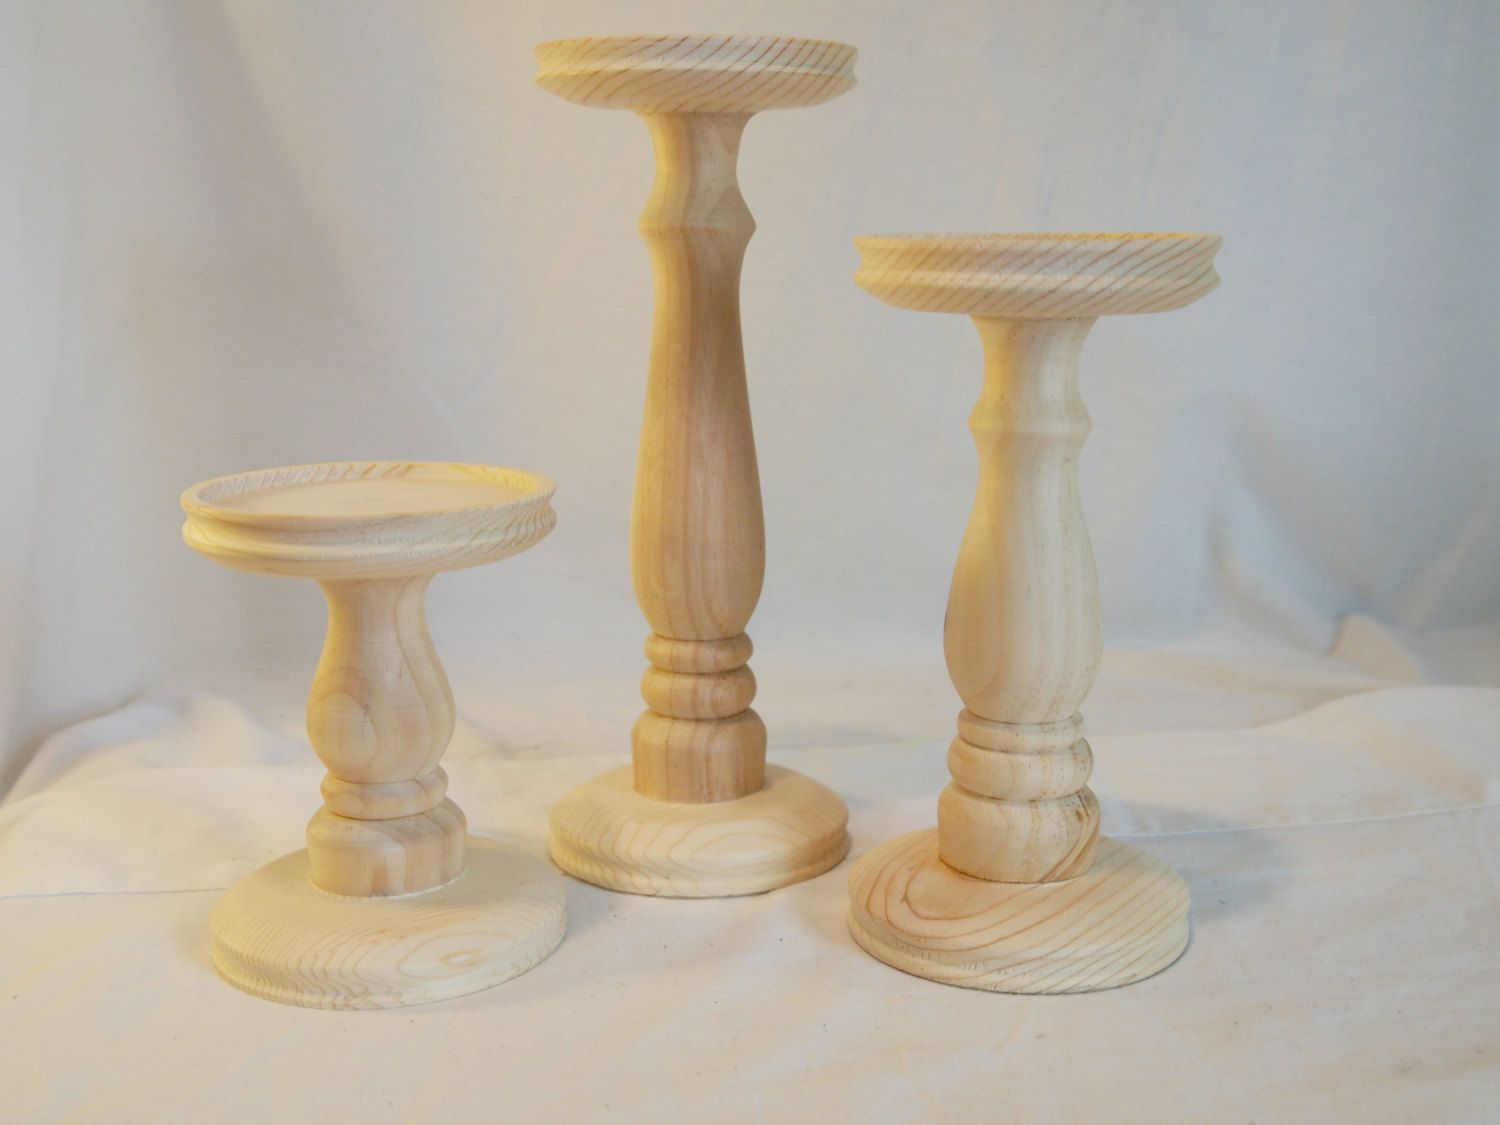 Unfinished Pillar Candle Holder Set Of 3 By Smokymtwoodnthings 51 00 Bougeoirs En Bois Kit